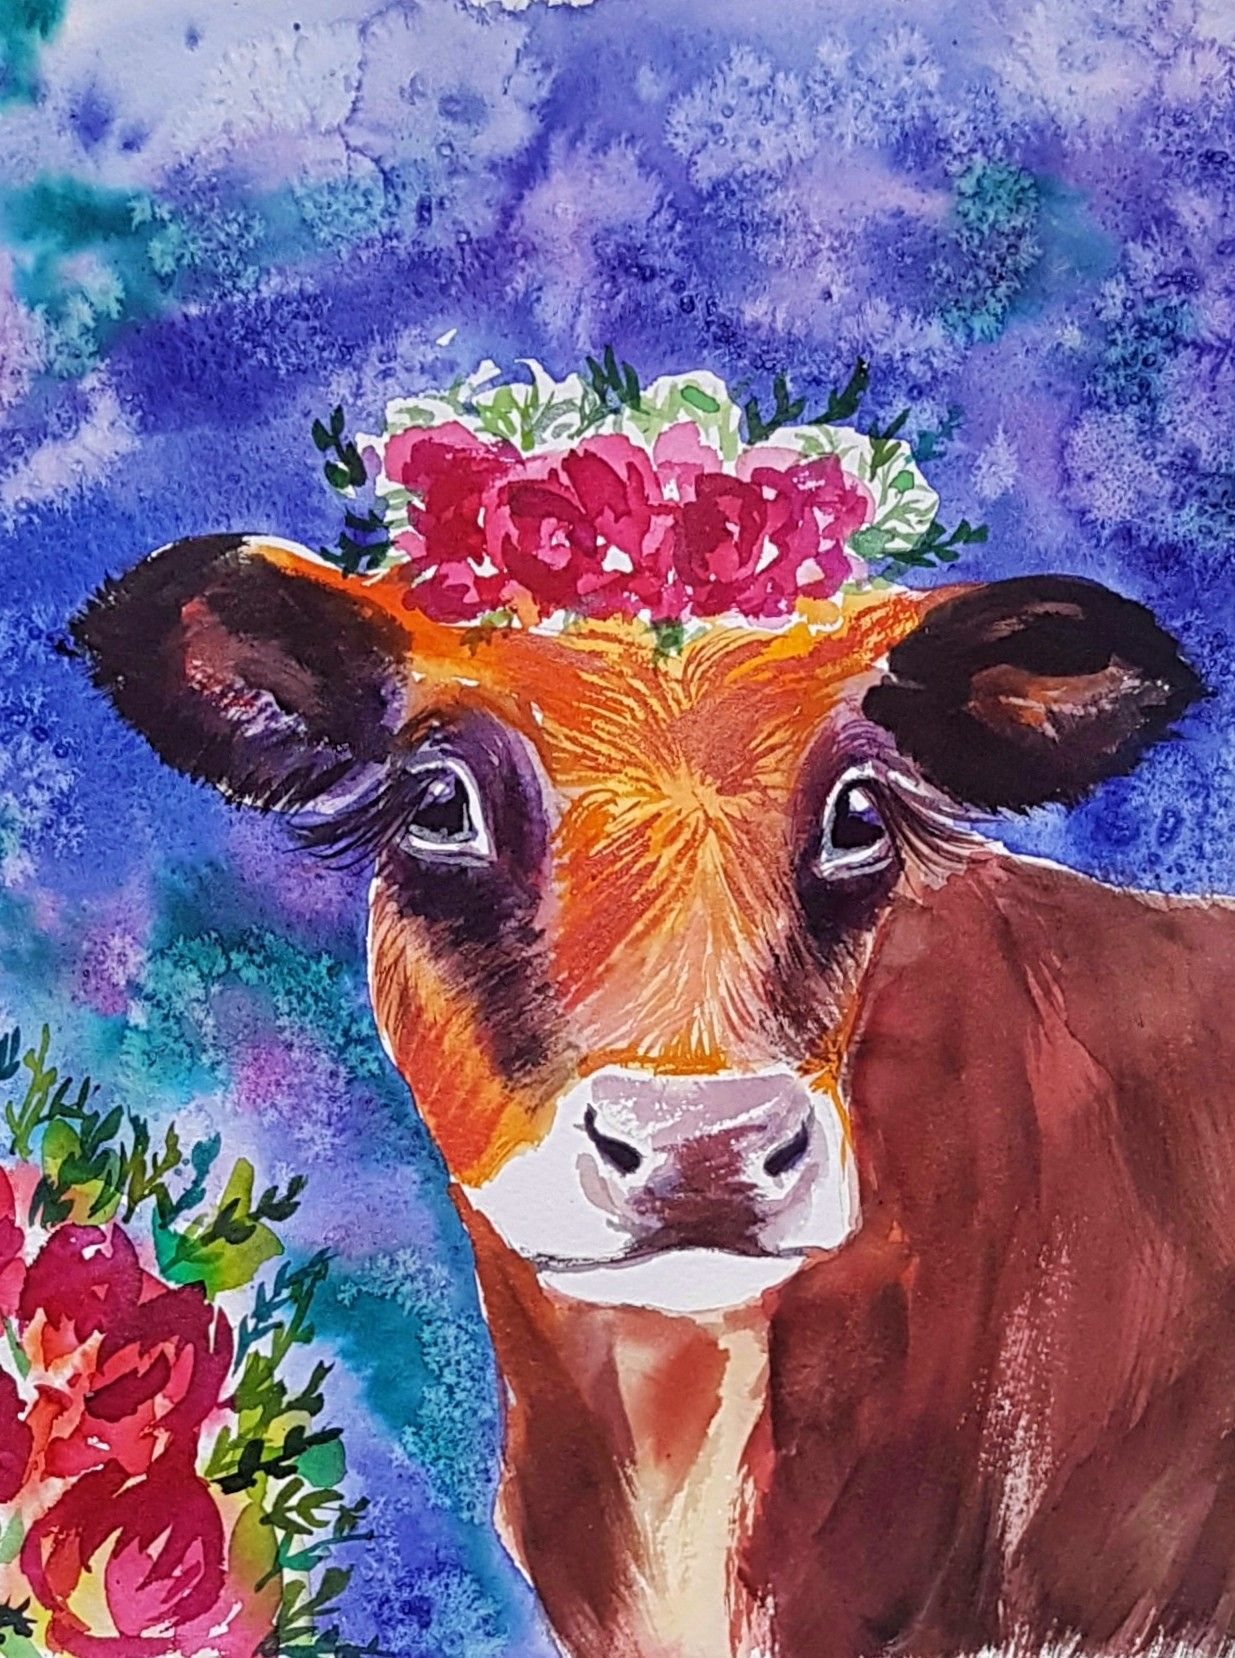 Cow In Flower Crown, Original Watercolor, Boho Wall Art, Home Decor #cow